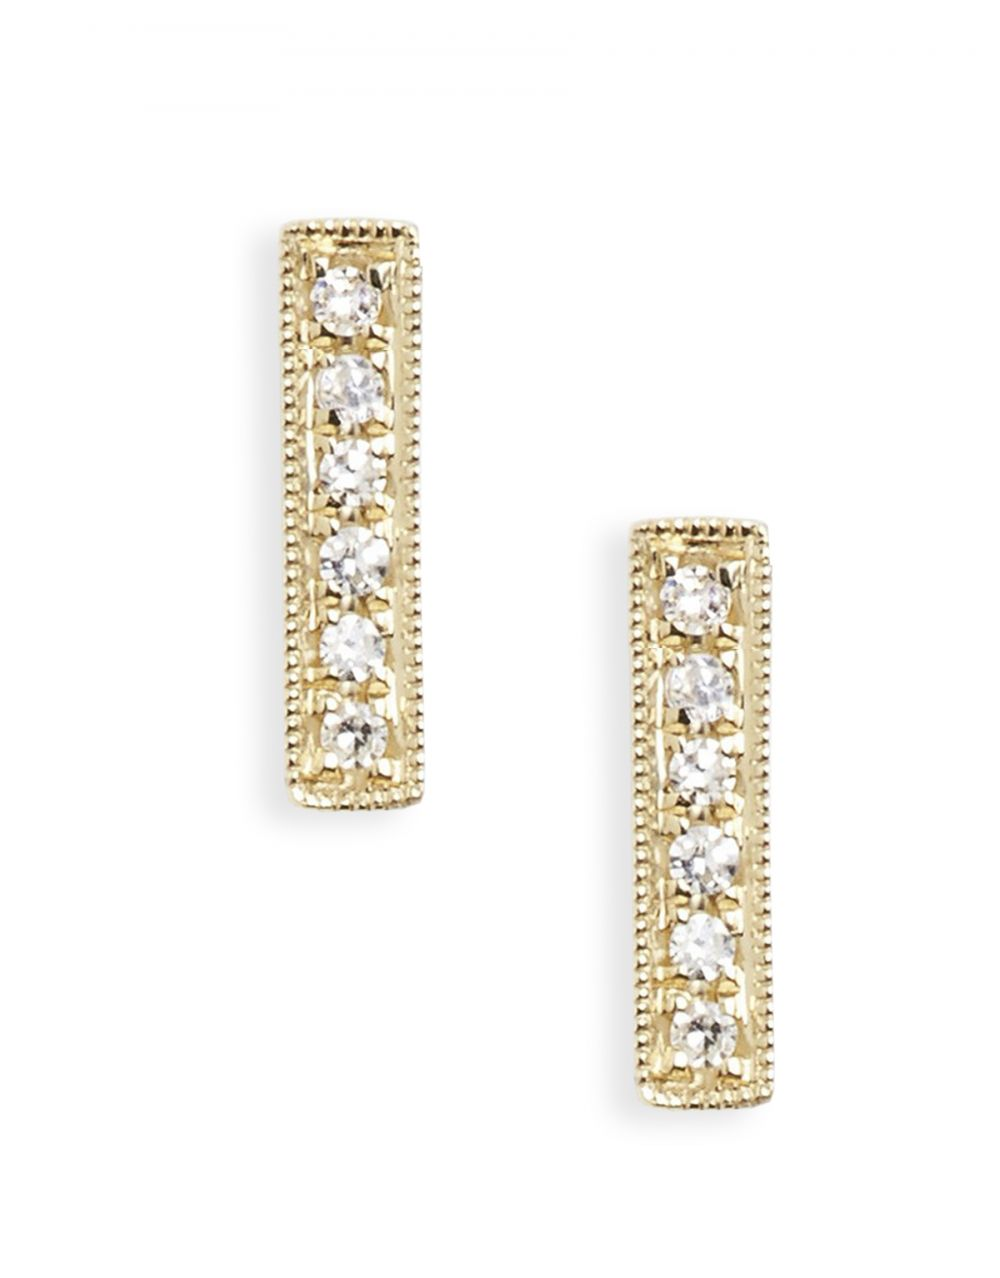 Pavé Bar Stud<br /><i><small>14K Yellow Gold with White Diamonds</small></i><br /> - Eddera